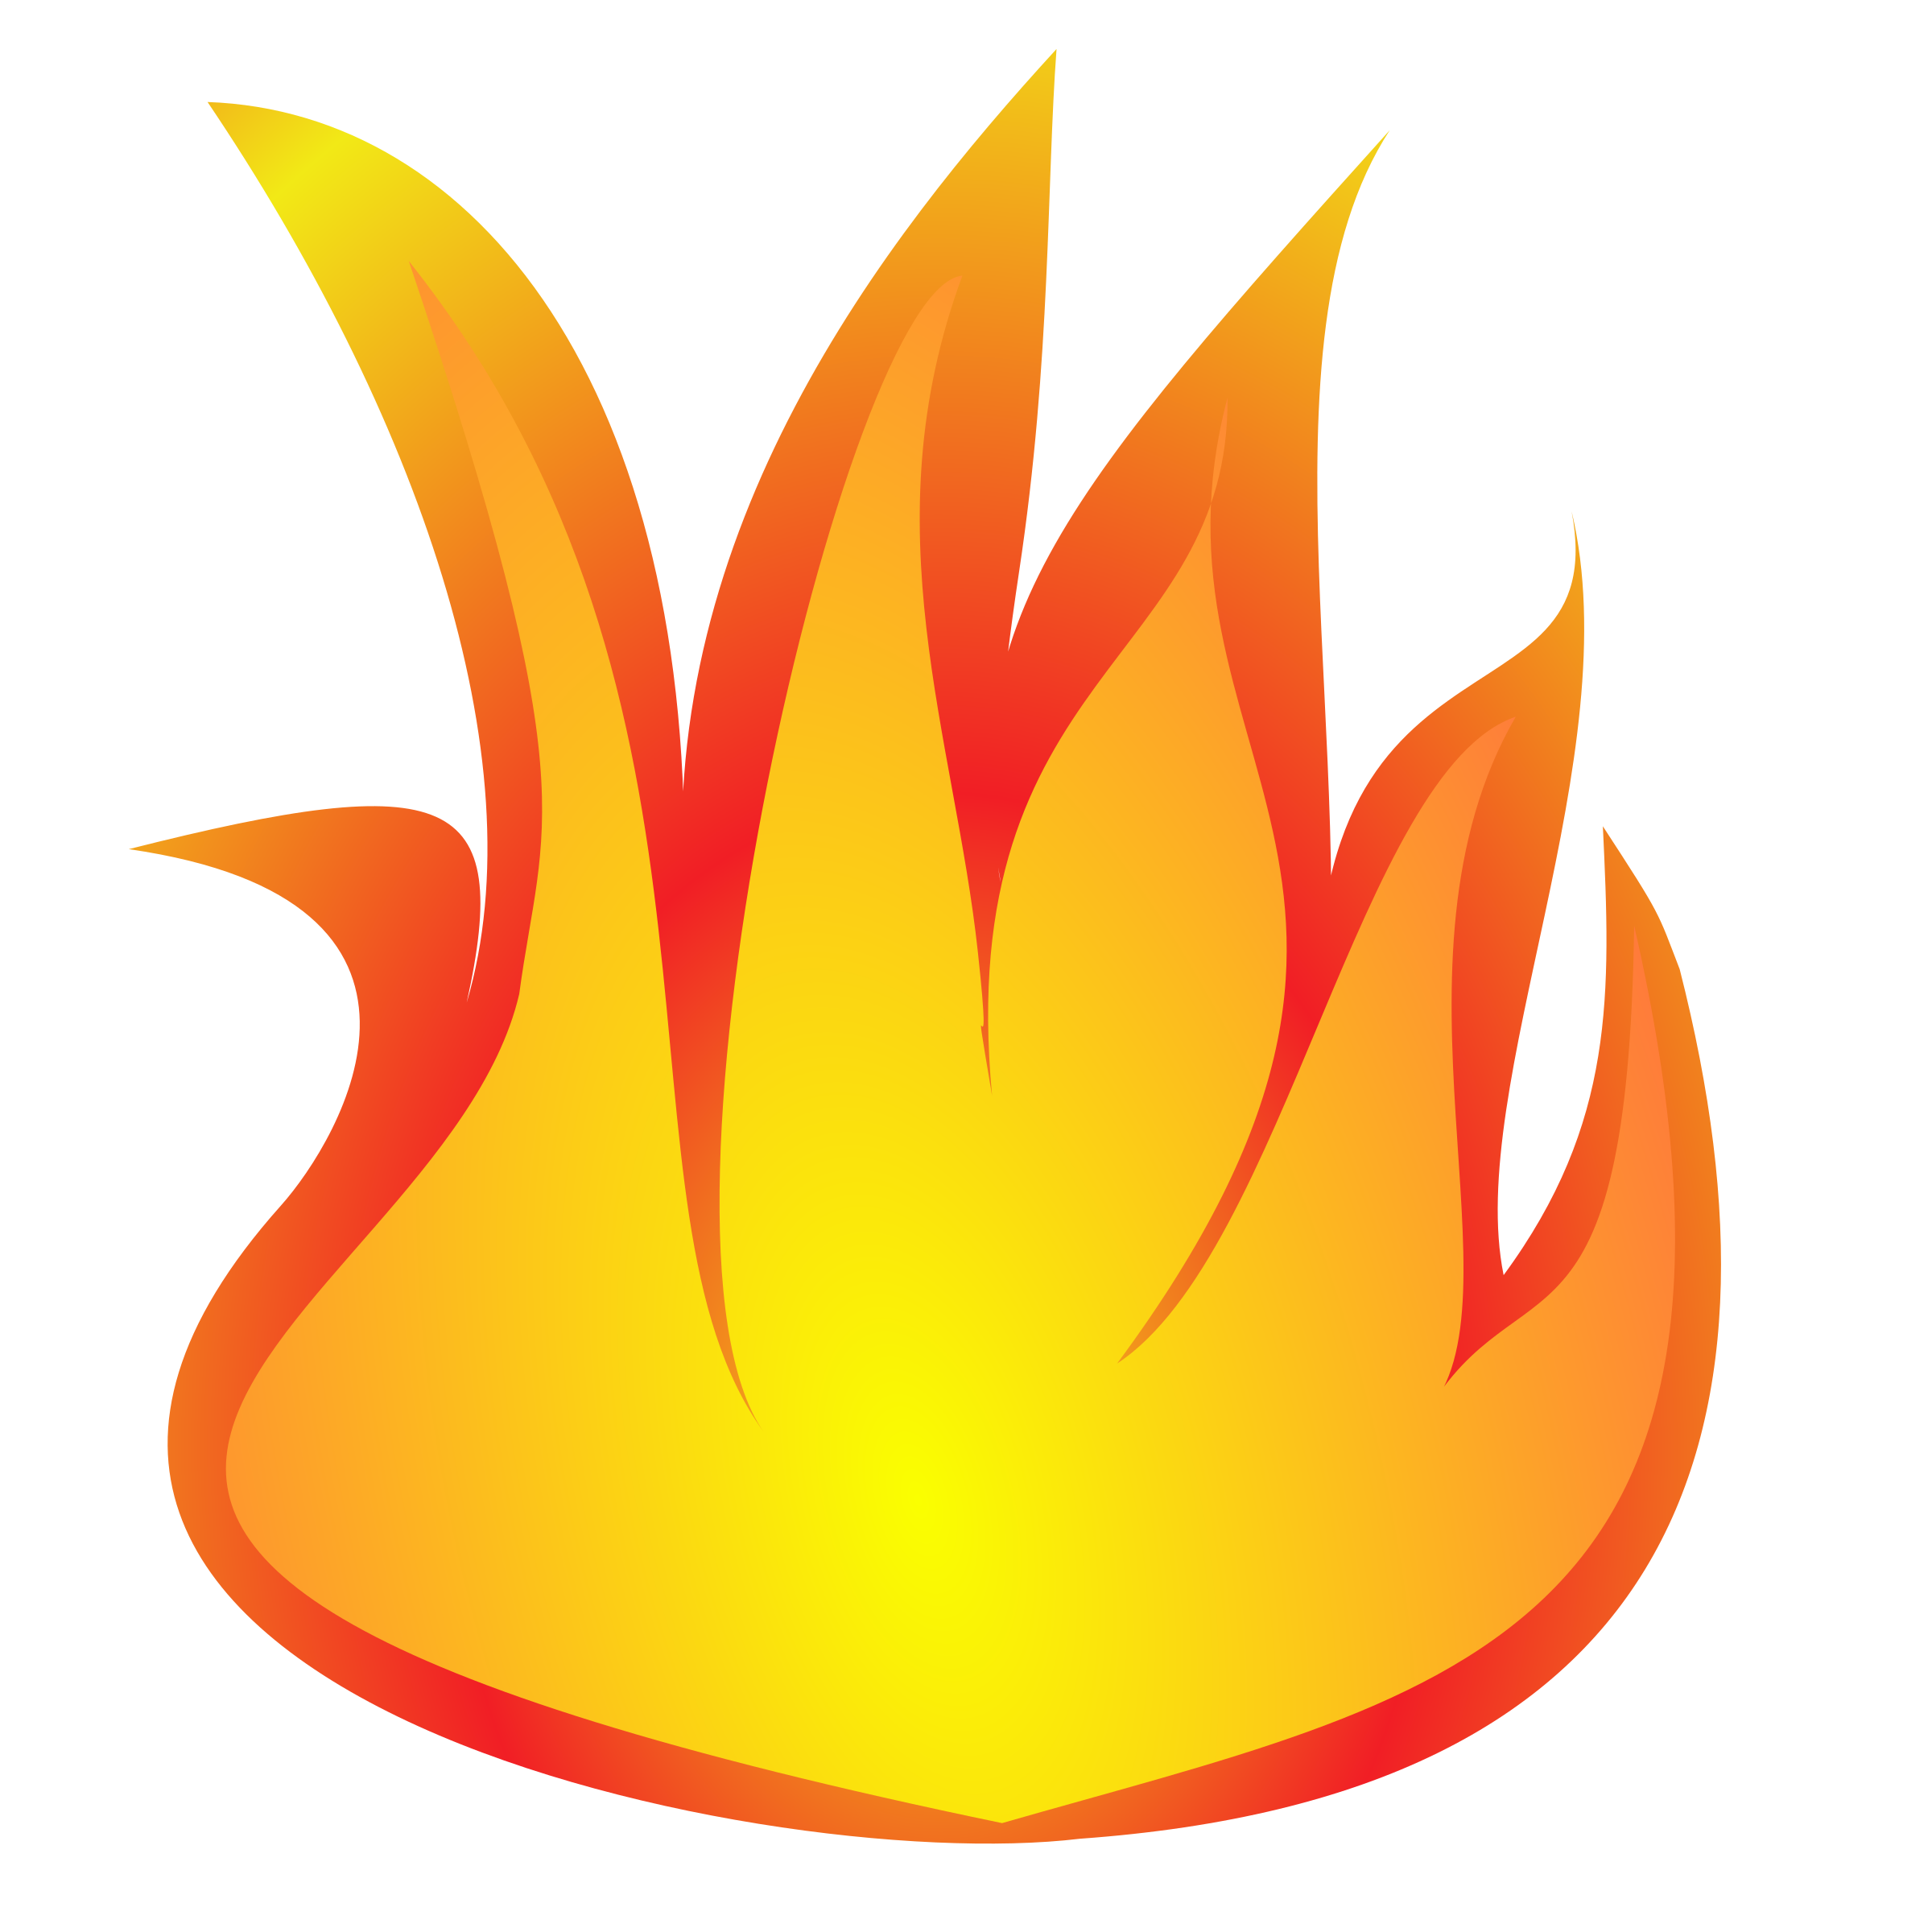 Fire clipart free download clip art on 4